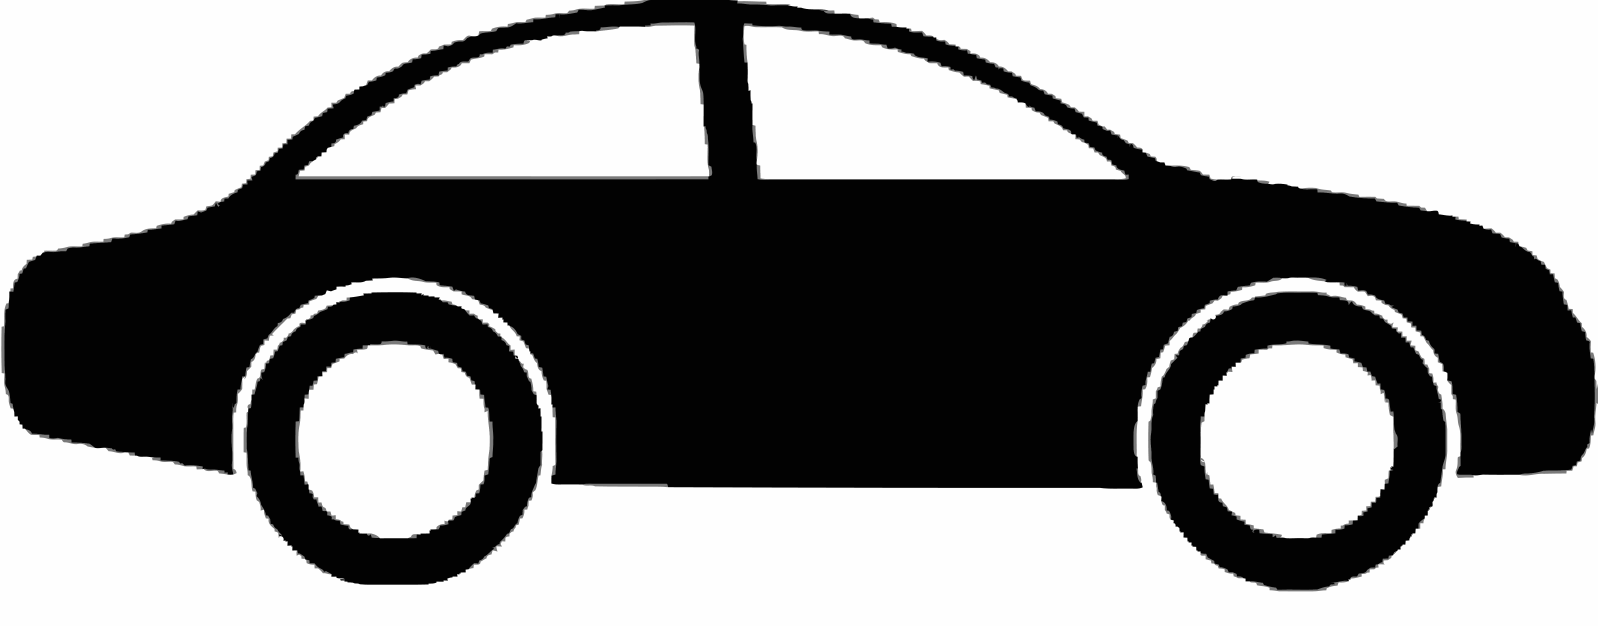 free car silhouette clip art - photo #9